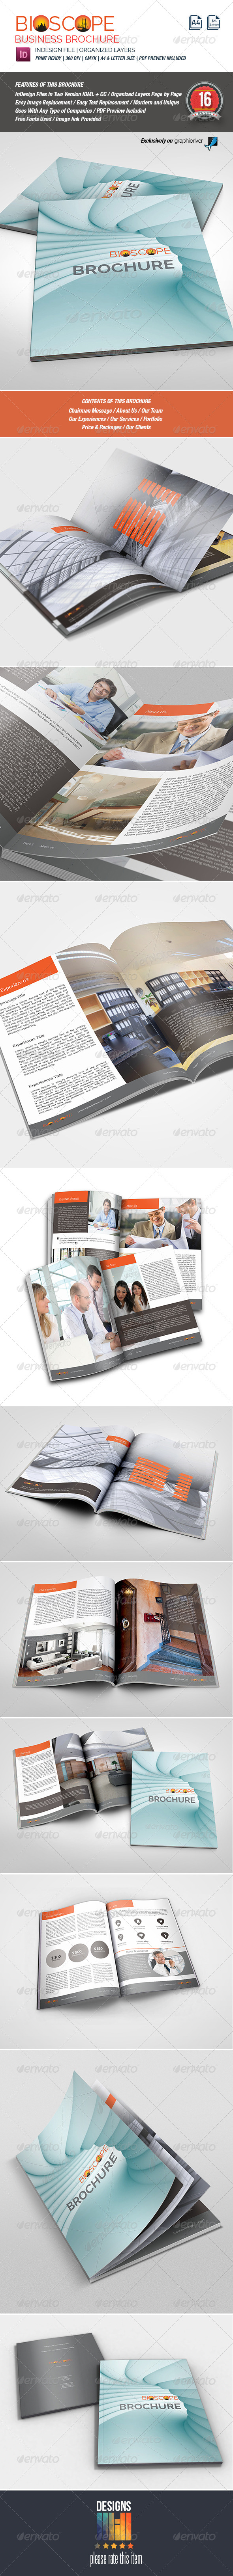 GraphicRiver Bioscope Multipurpose Brochure 8726404